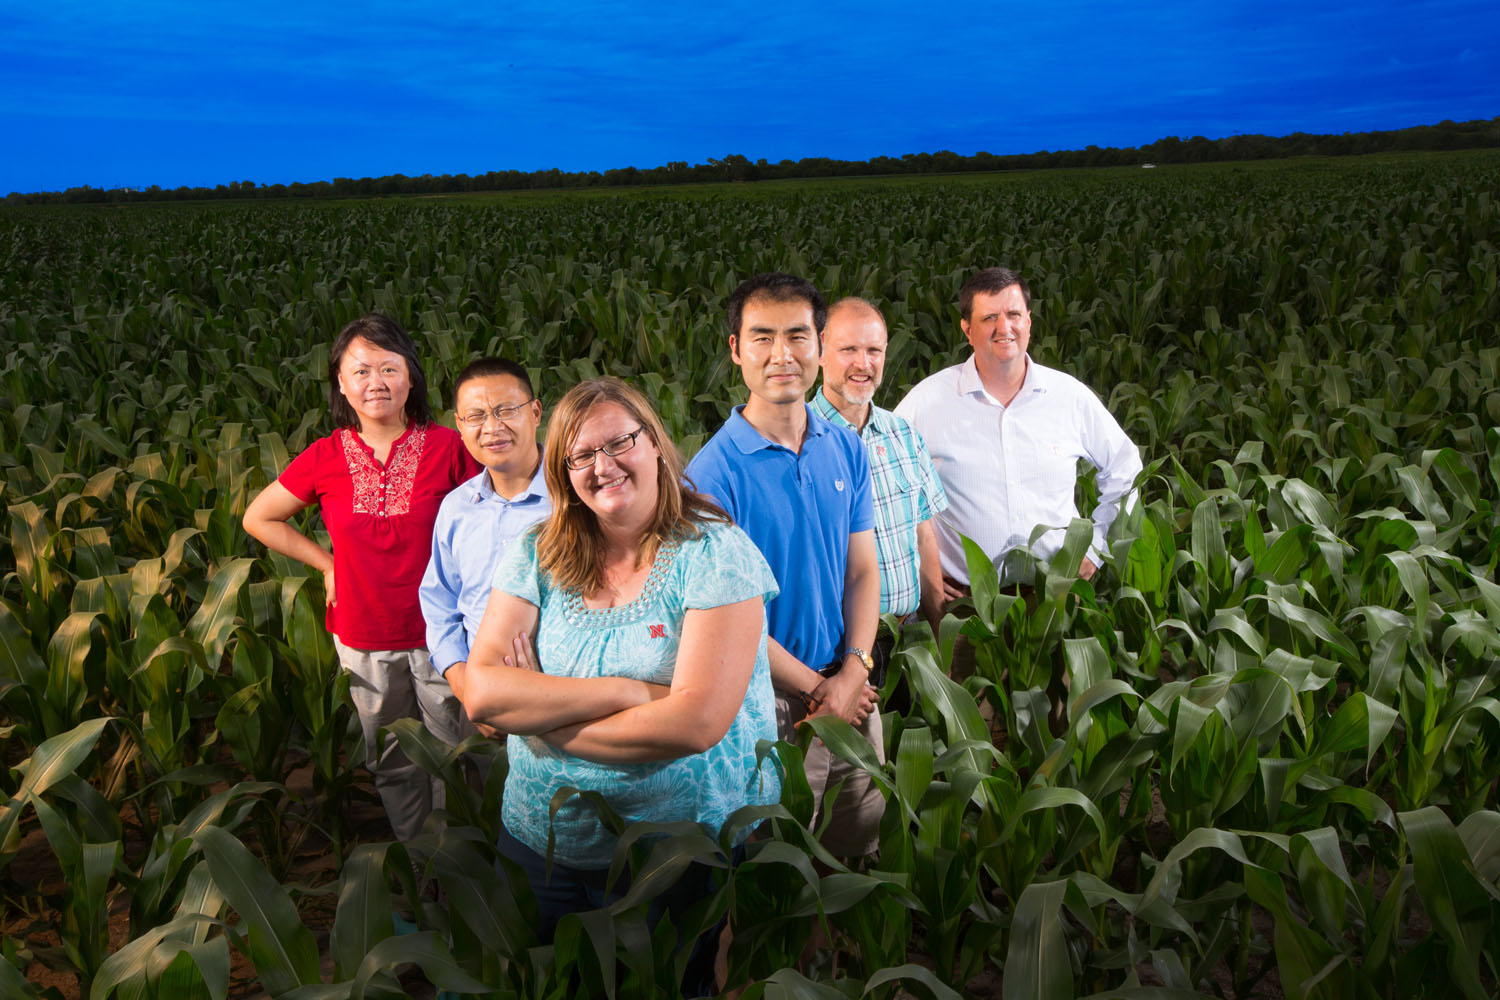 When droughts ravage agriculture, the role of climate change grabs headlines. But the climate's impact on groundwater quality as food production adapts to a warming planet receives less attention. An interdisciplinary team of UNL researchers is investigating the climate's effect on groundwater contamination from chemicals used in crop and animal production, including indirect effects from land use changes.